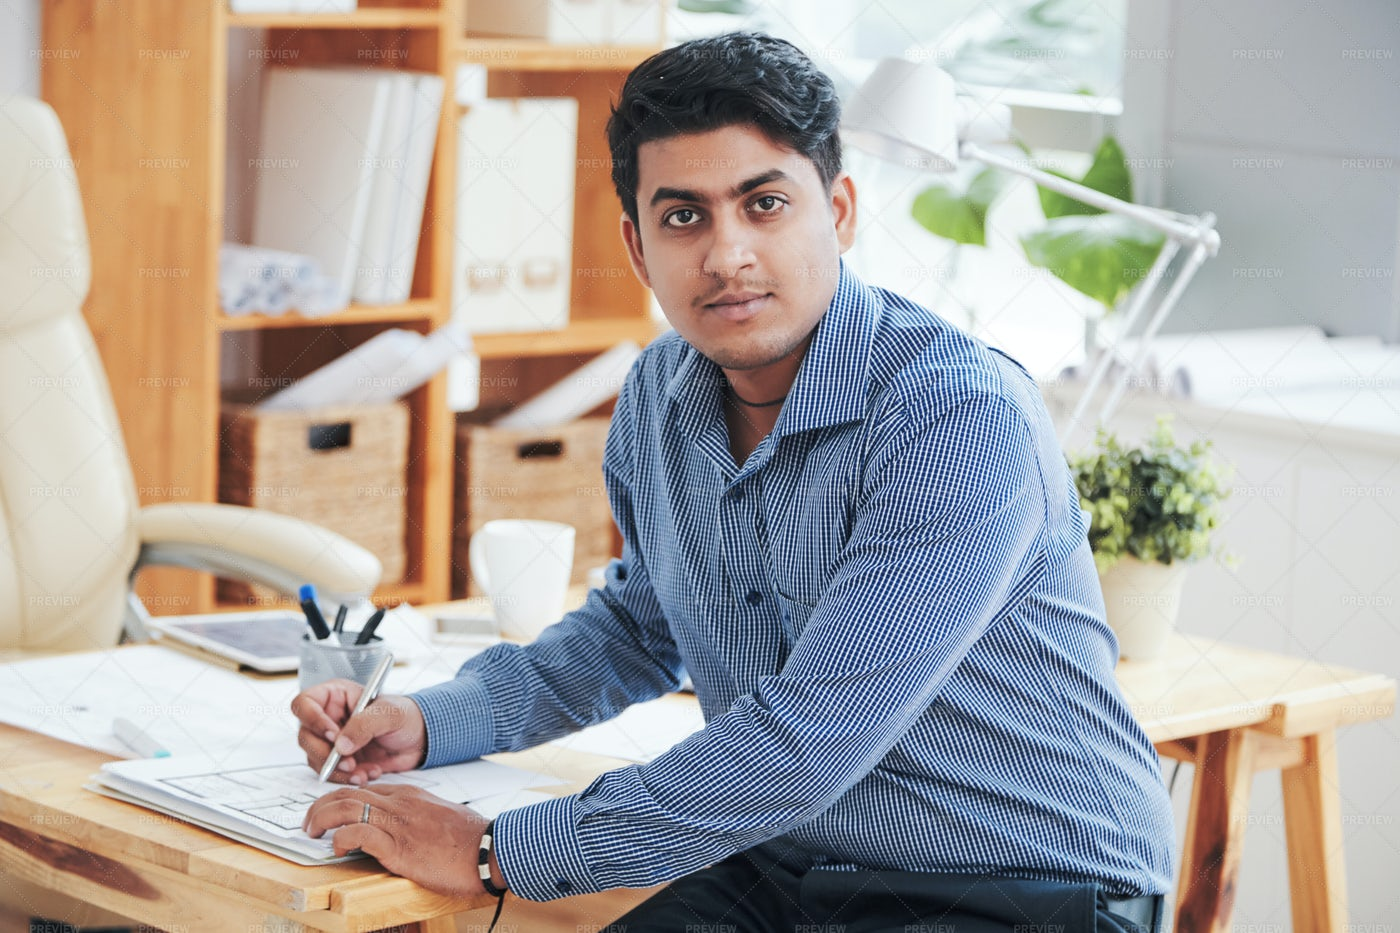 Man Working With Papers Looking At...: Stock Photos